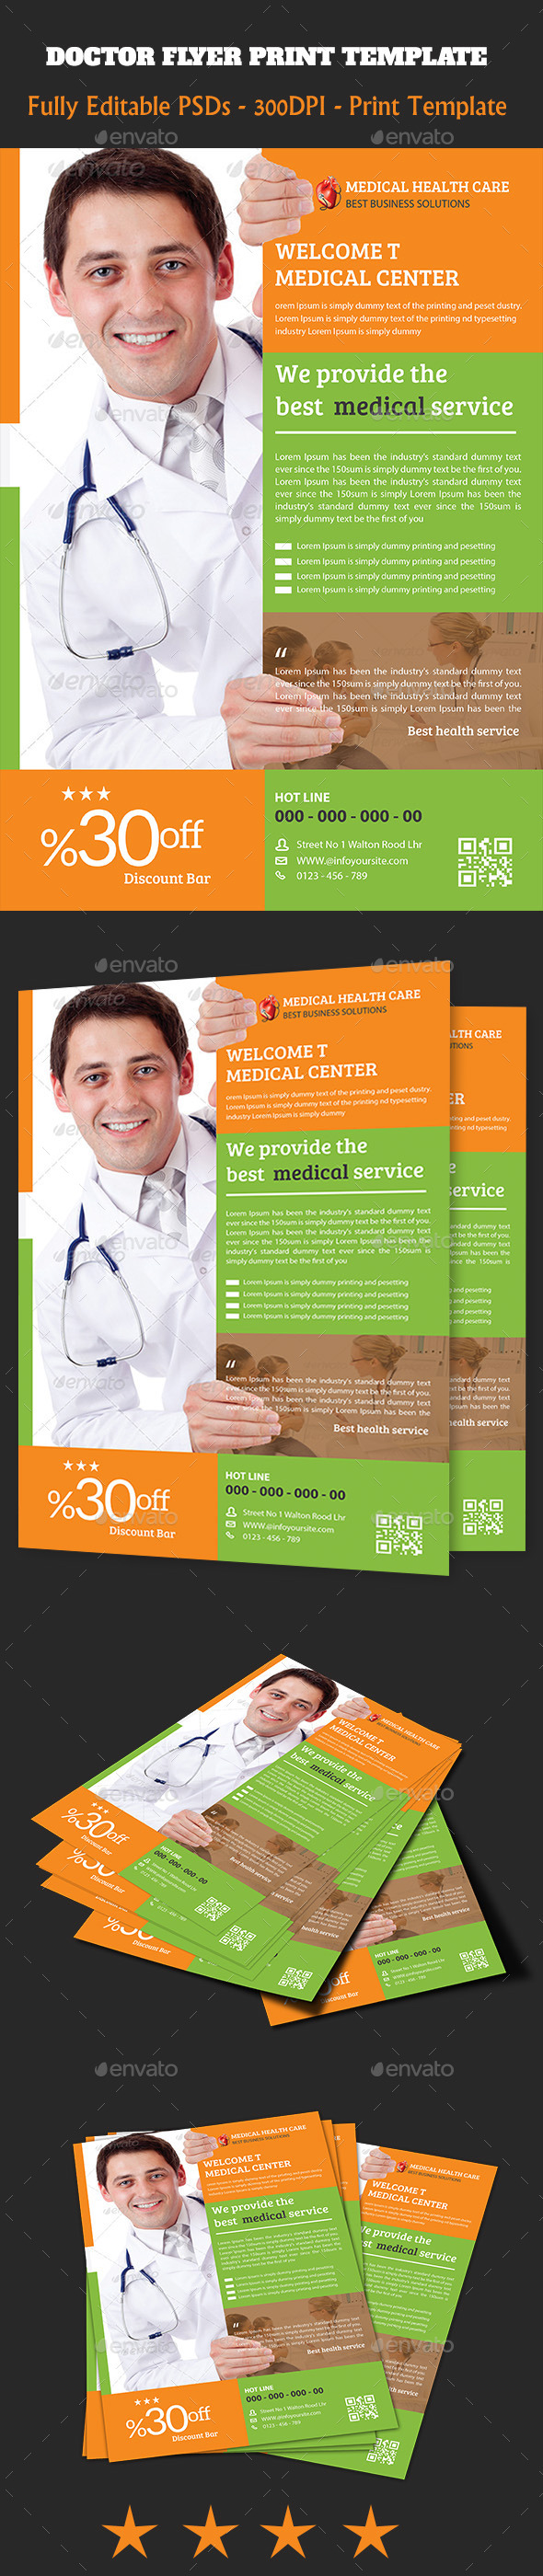 GraphicRiver Doctor Flyer Template 11127719